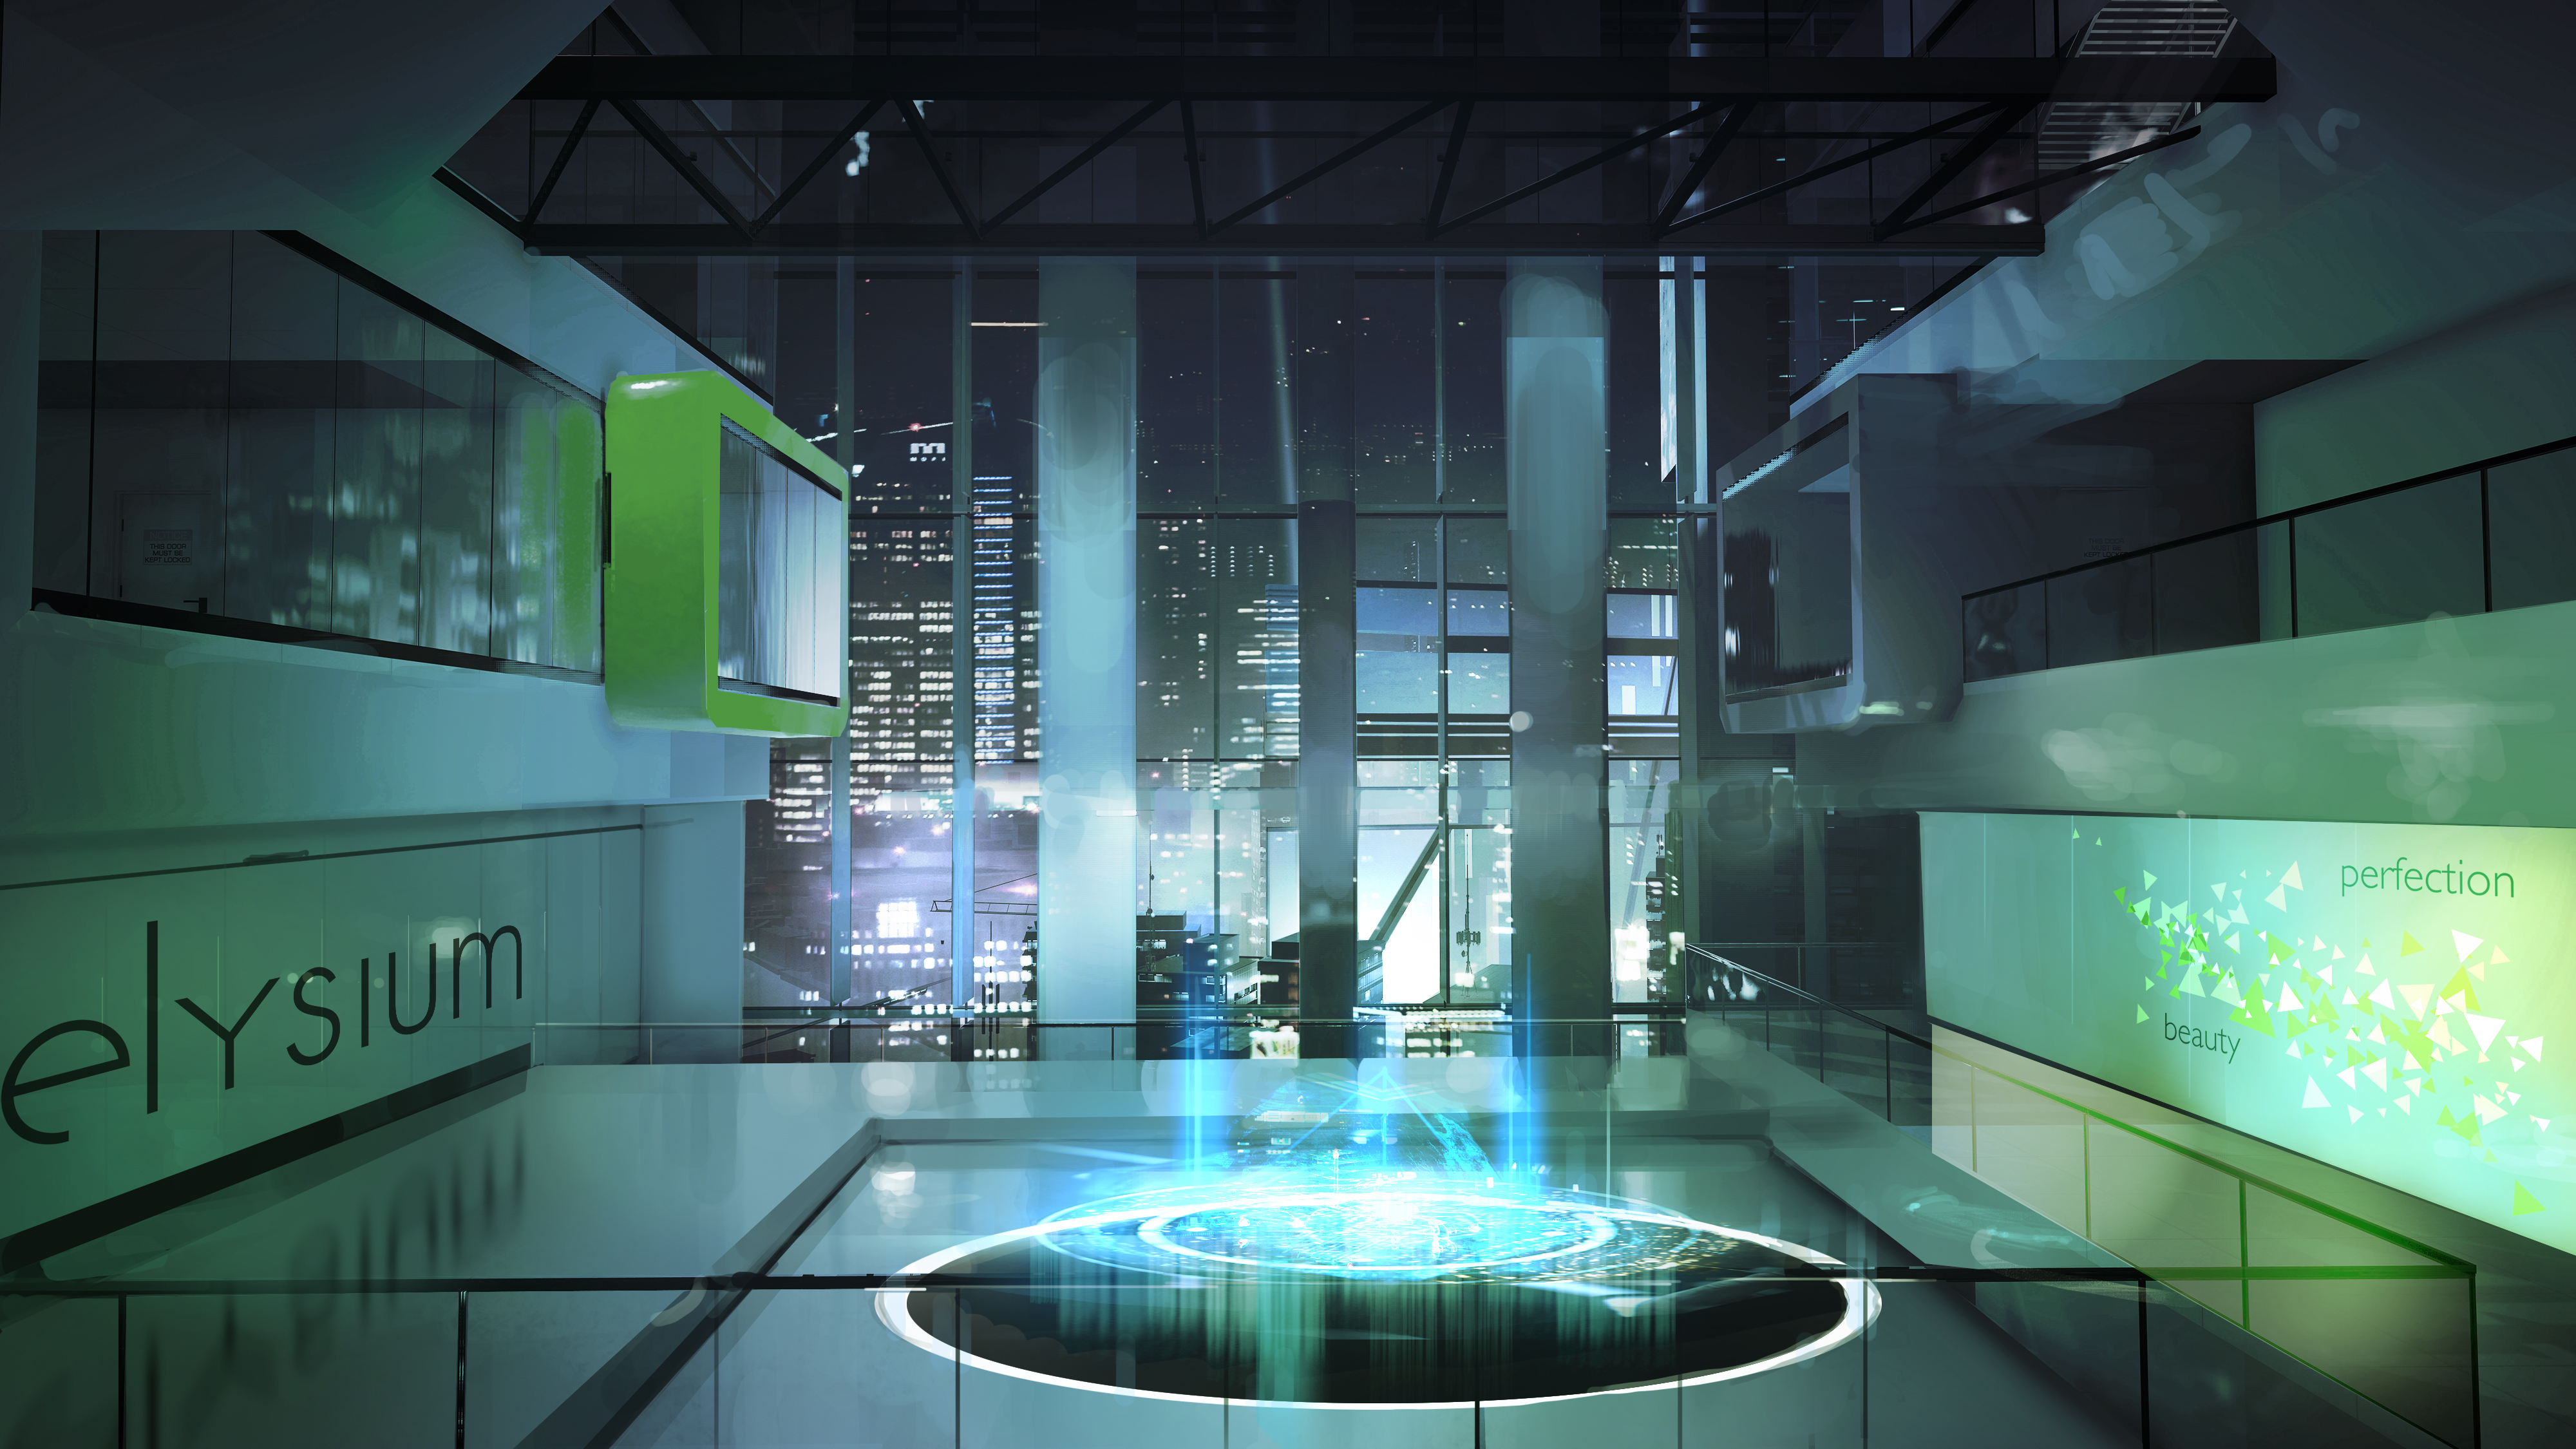 Mirror's Edge Catalyst Wallpapers, Pictures, Images